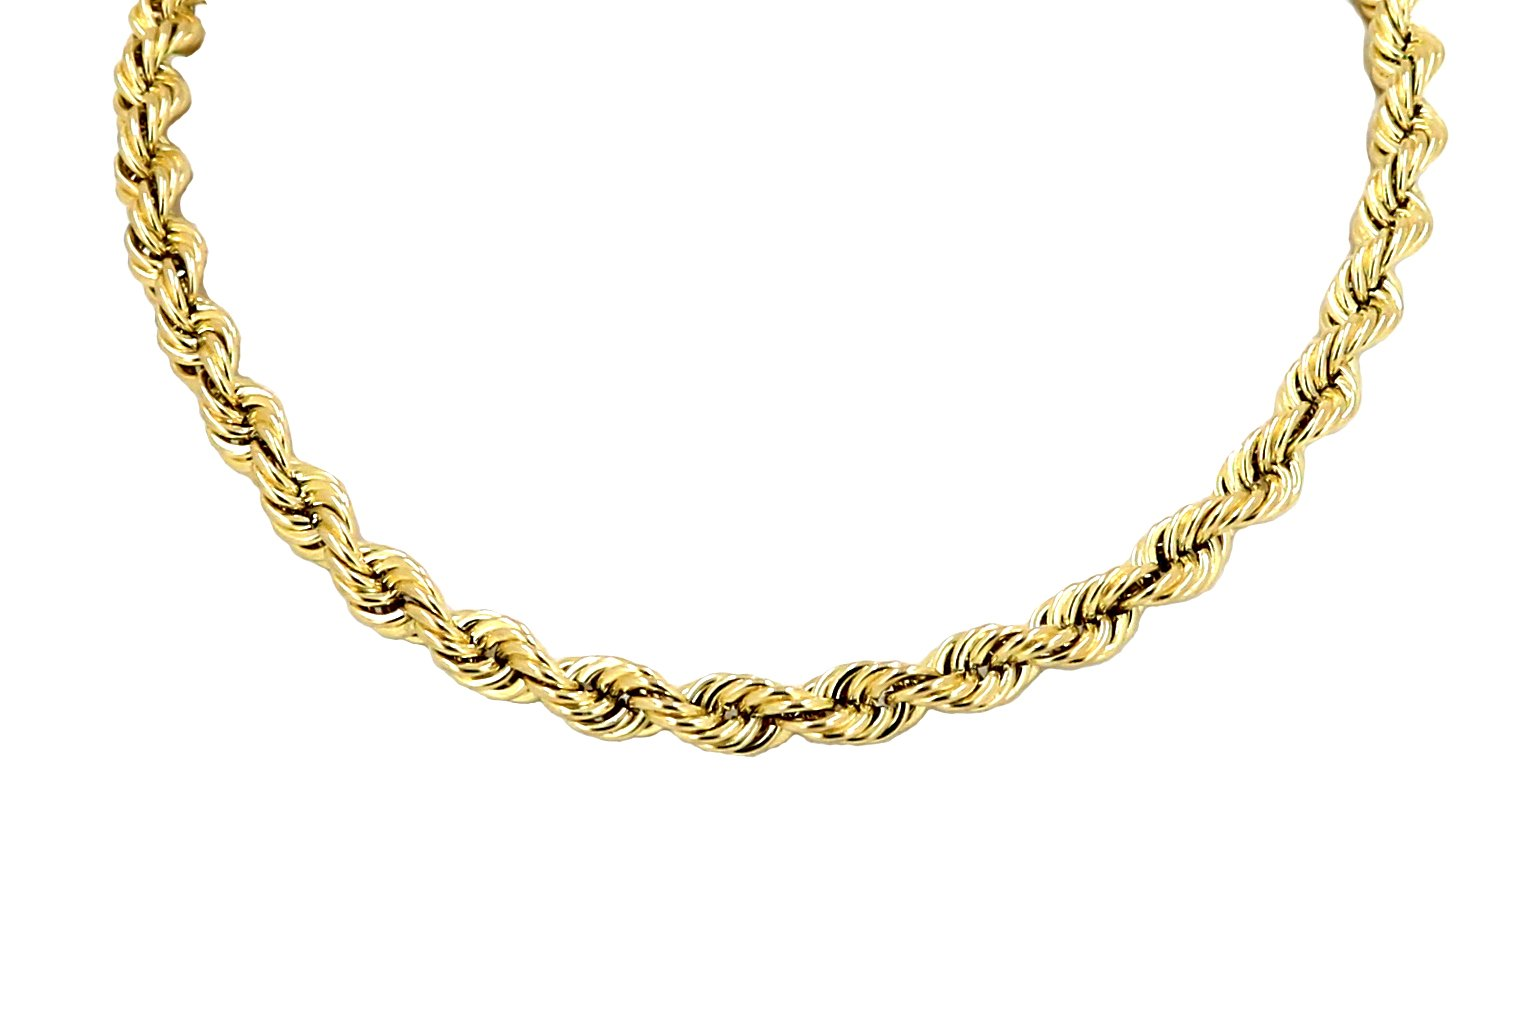 Real 10K Yellow Gold Hollow Rope Chain Necklace 2.5MM 16'' to 28'' (18 Inches)